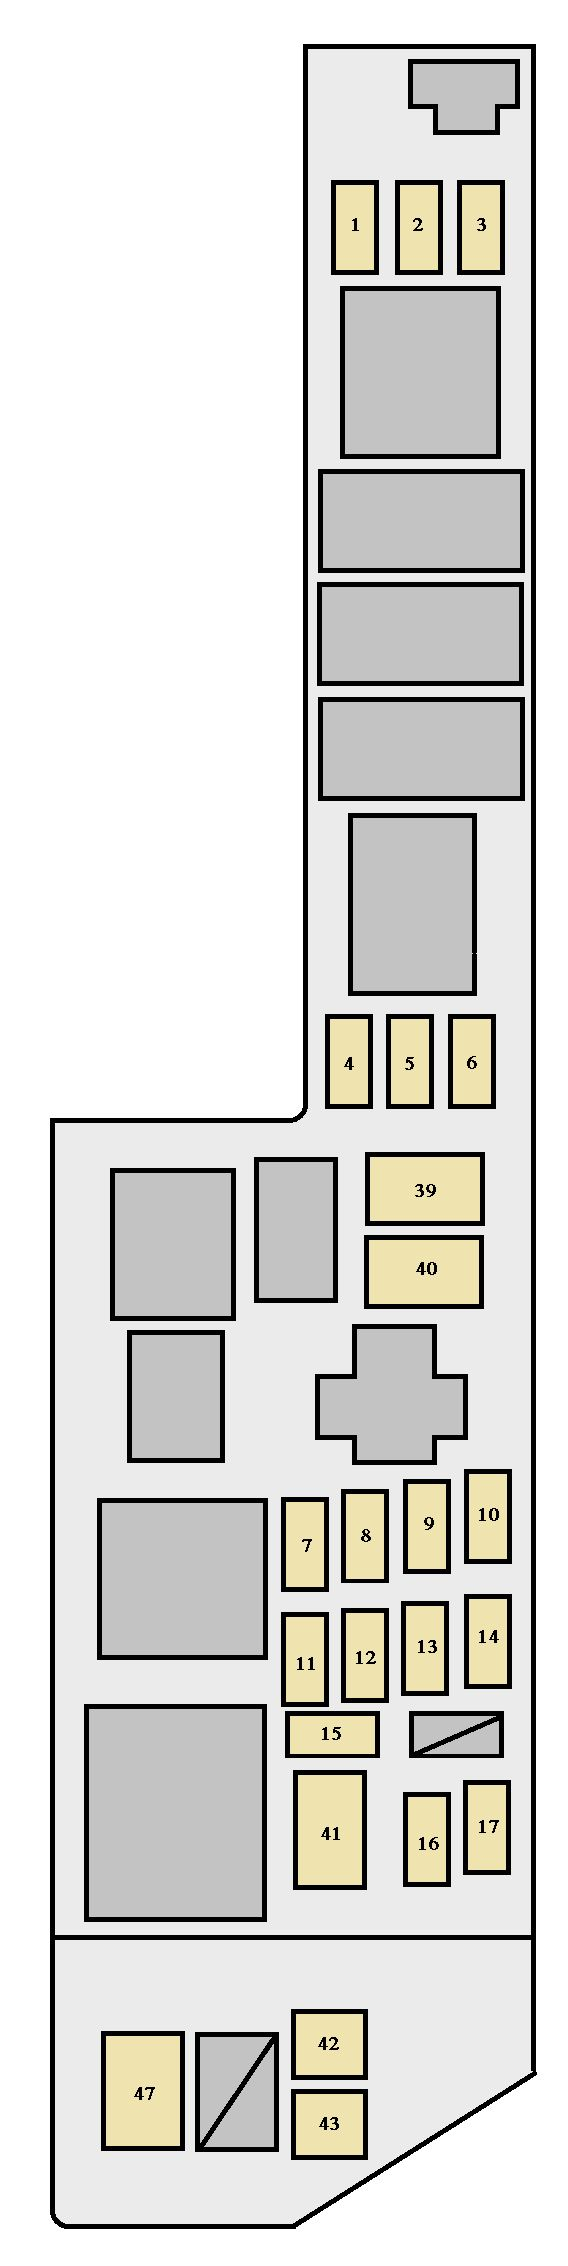 medium resolution of toyota solara first generation mk1 2003 fuse box diagram